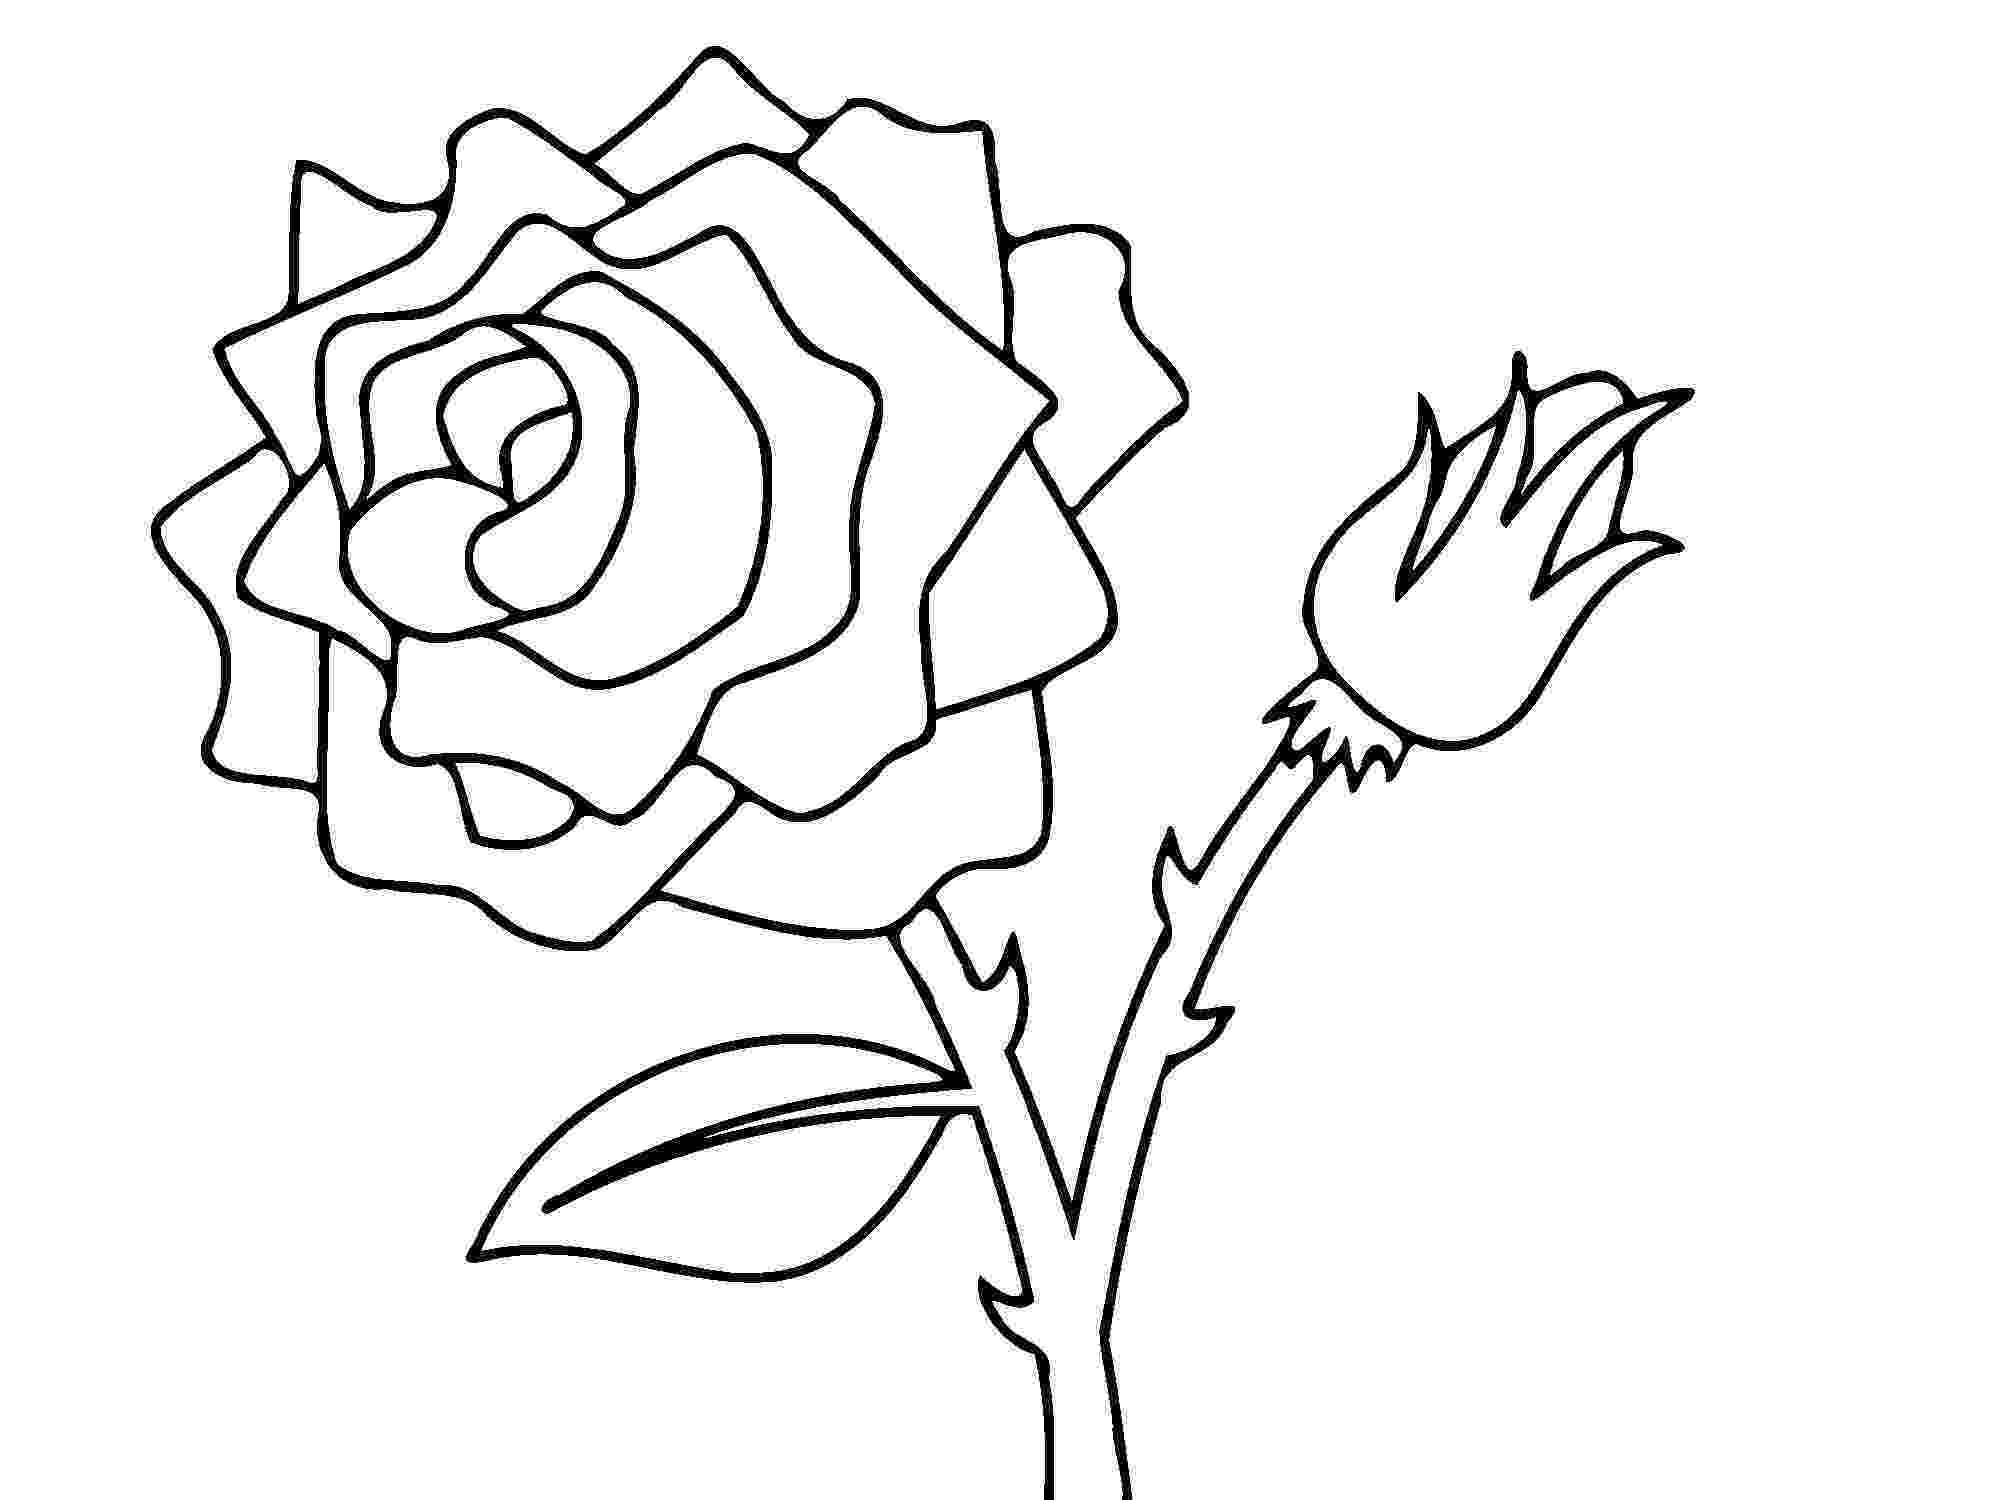 rose flower coloring page rose flower coloring pages getcoloringpagescom page flower rose coloring